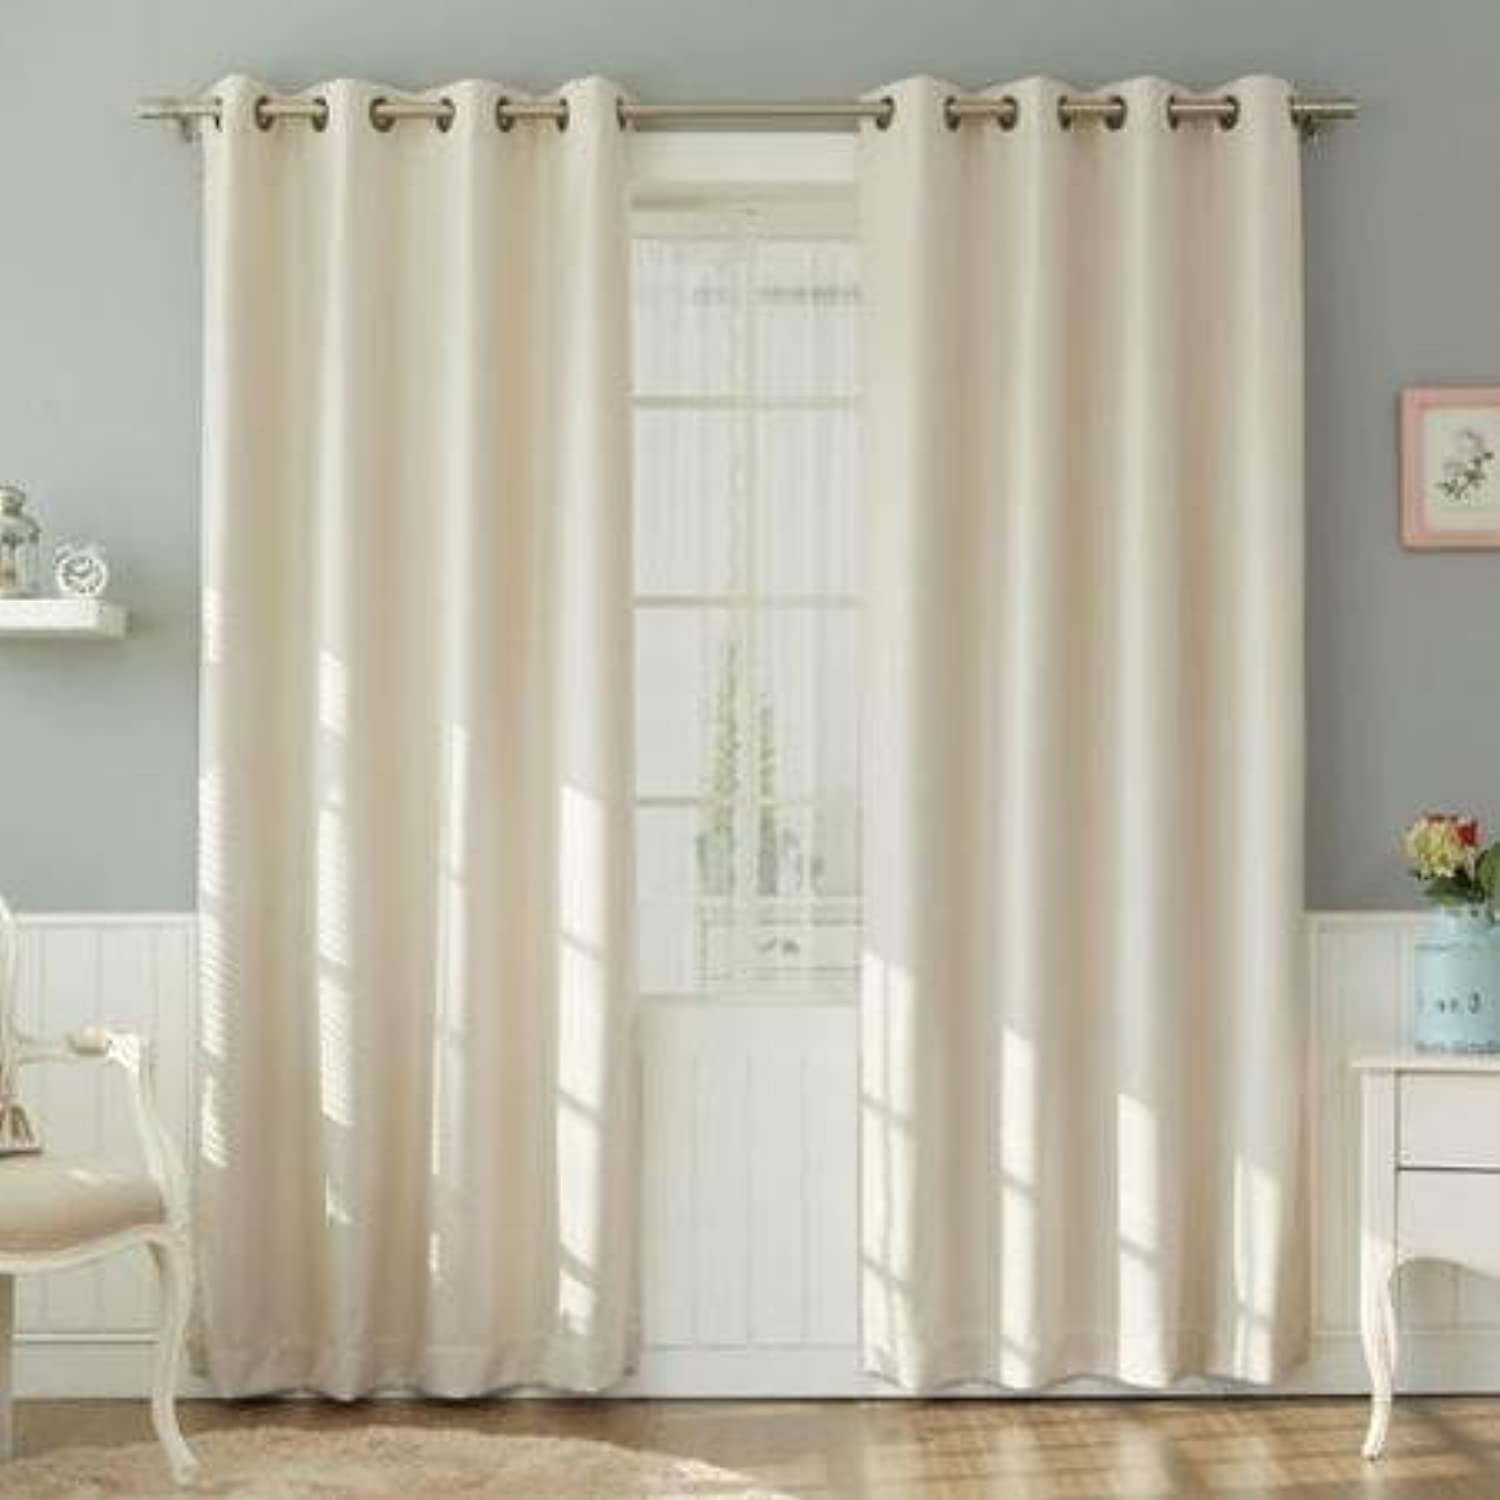 2 Panel Curtain 100% Cotton very thick material 54 Widht wise & 95 Inch Length Wise Ivory Solid